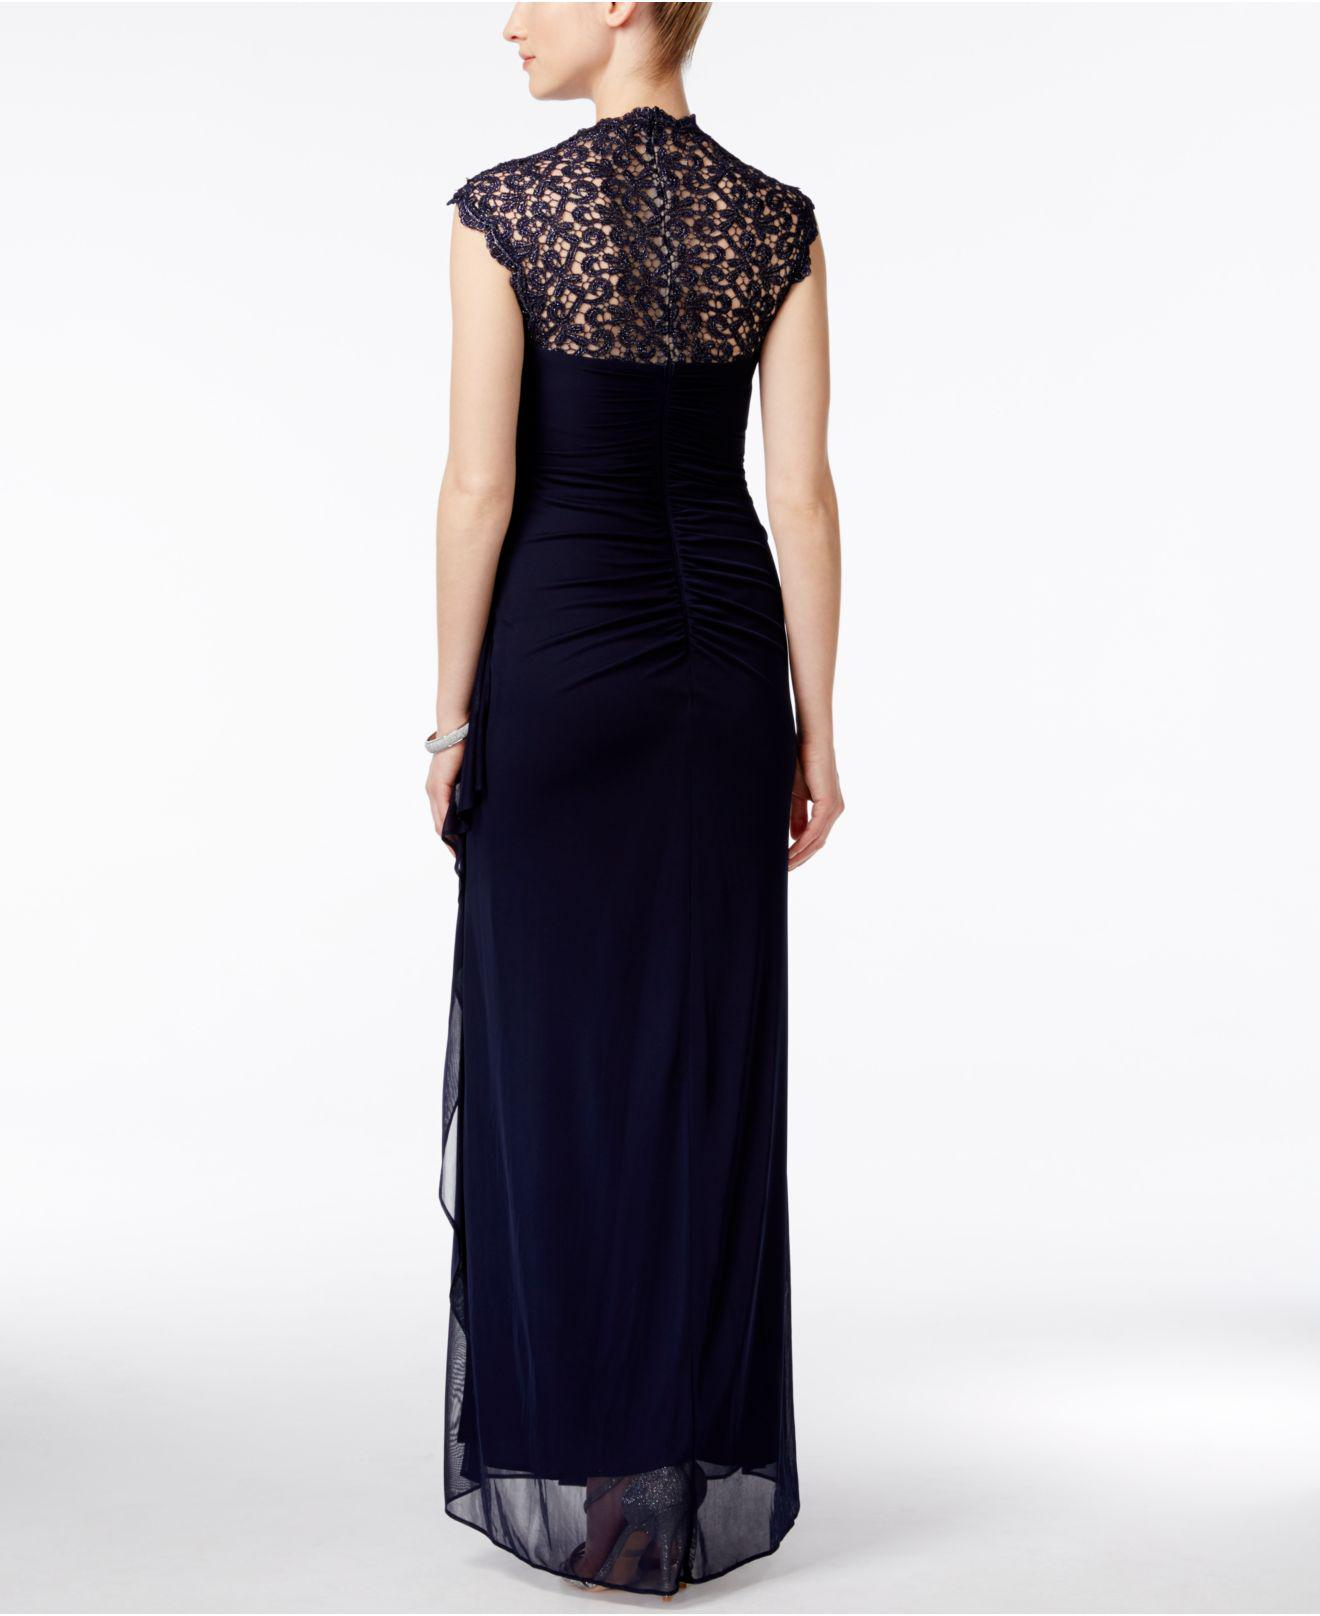 Lyst - Xscape Illusion Back Chiffon and Lace Gown in Black - Save ...